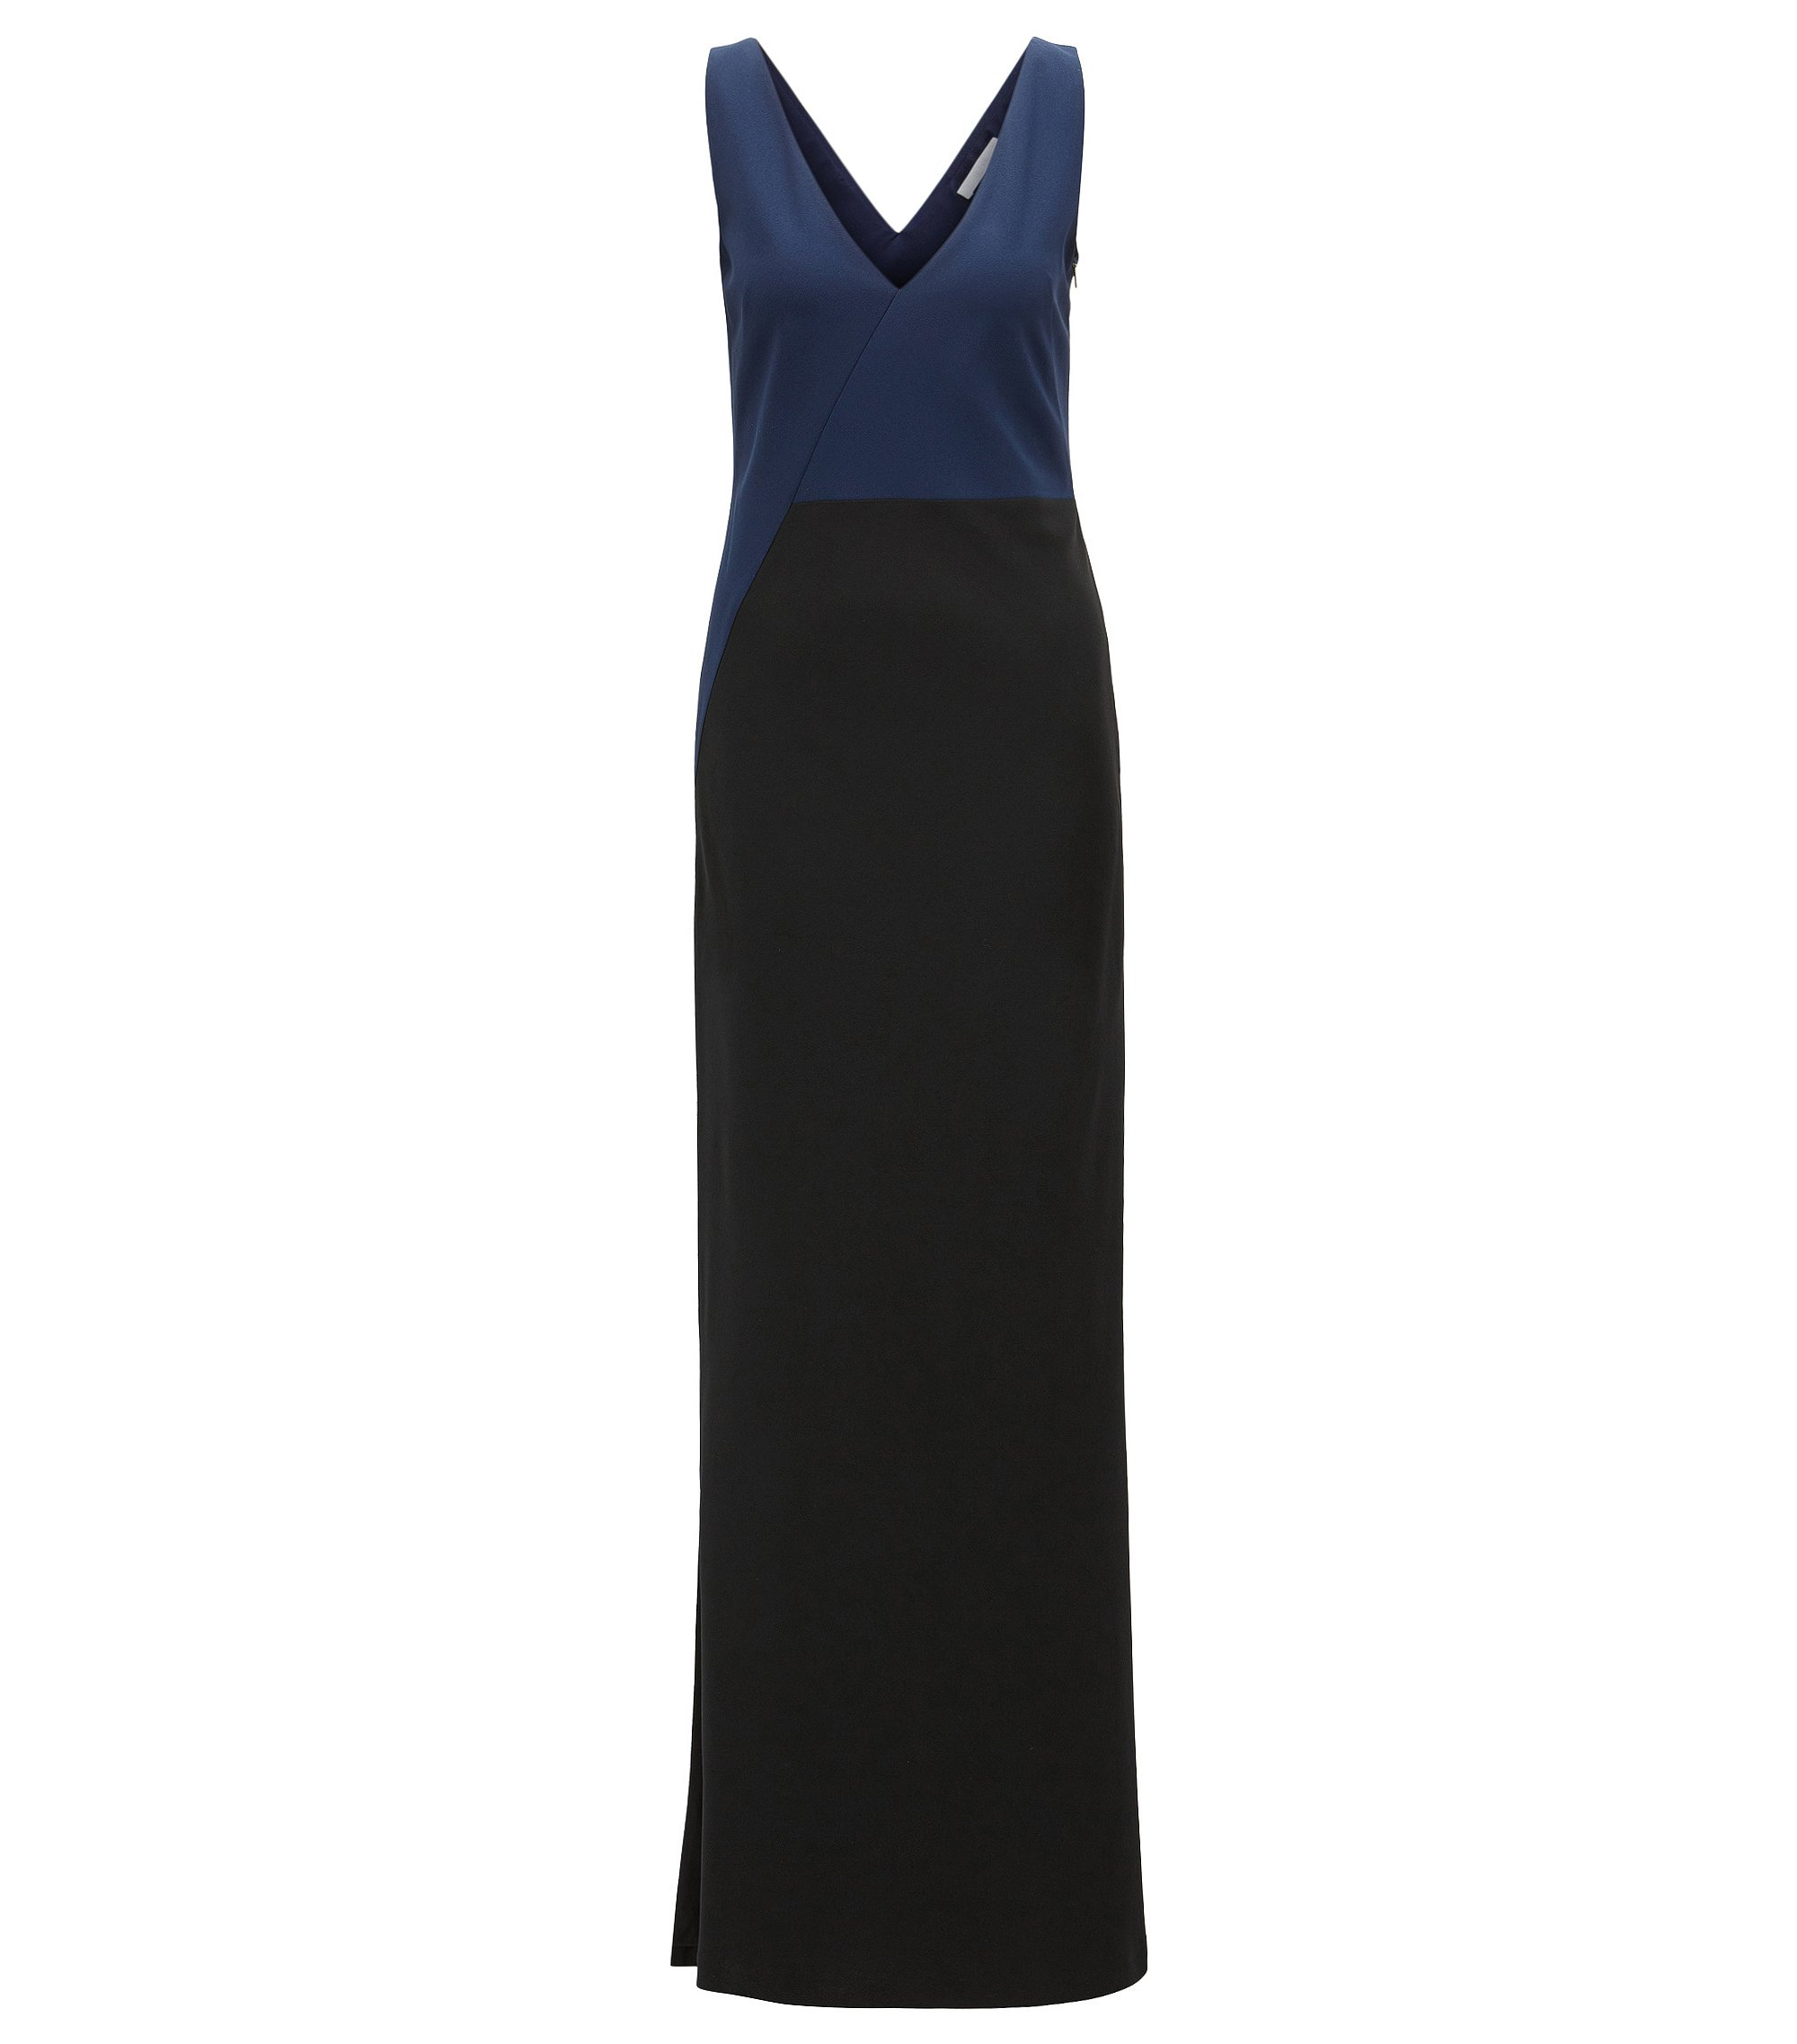 Abendkleid aus Krepp in Colour-Block-Optik mit Satin-Innenseite, Schwarz